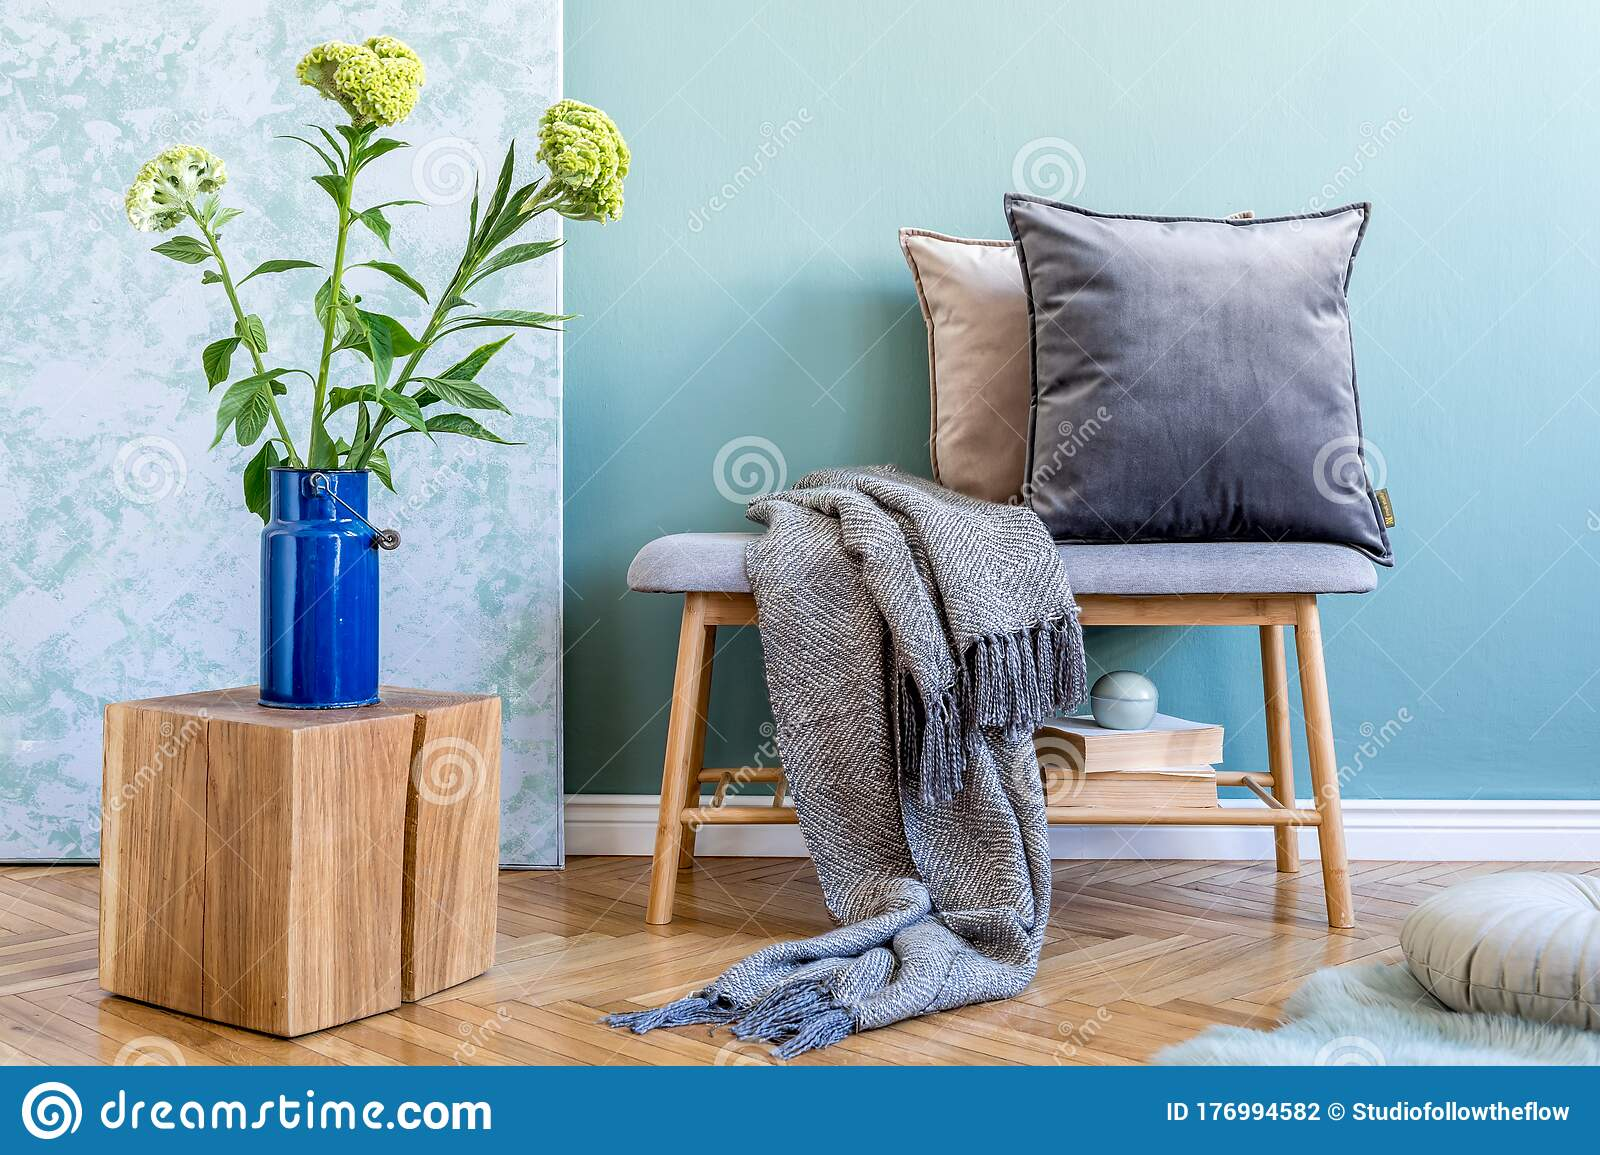 Scandinavian Wooden Bench With Pillows And Plaid Stock Photo Image Of Interior Furnitures 176994582